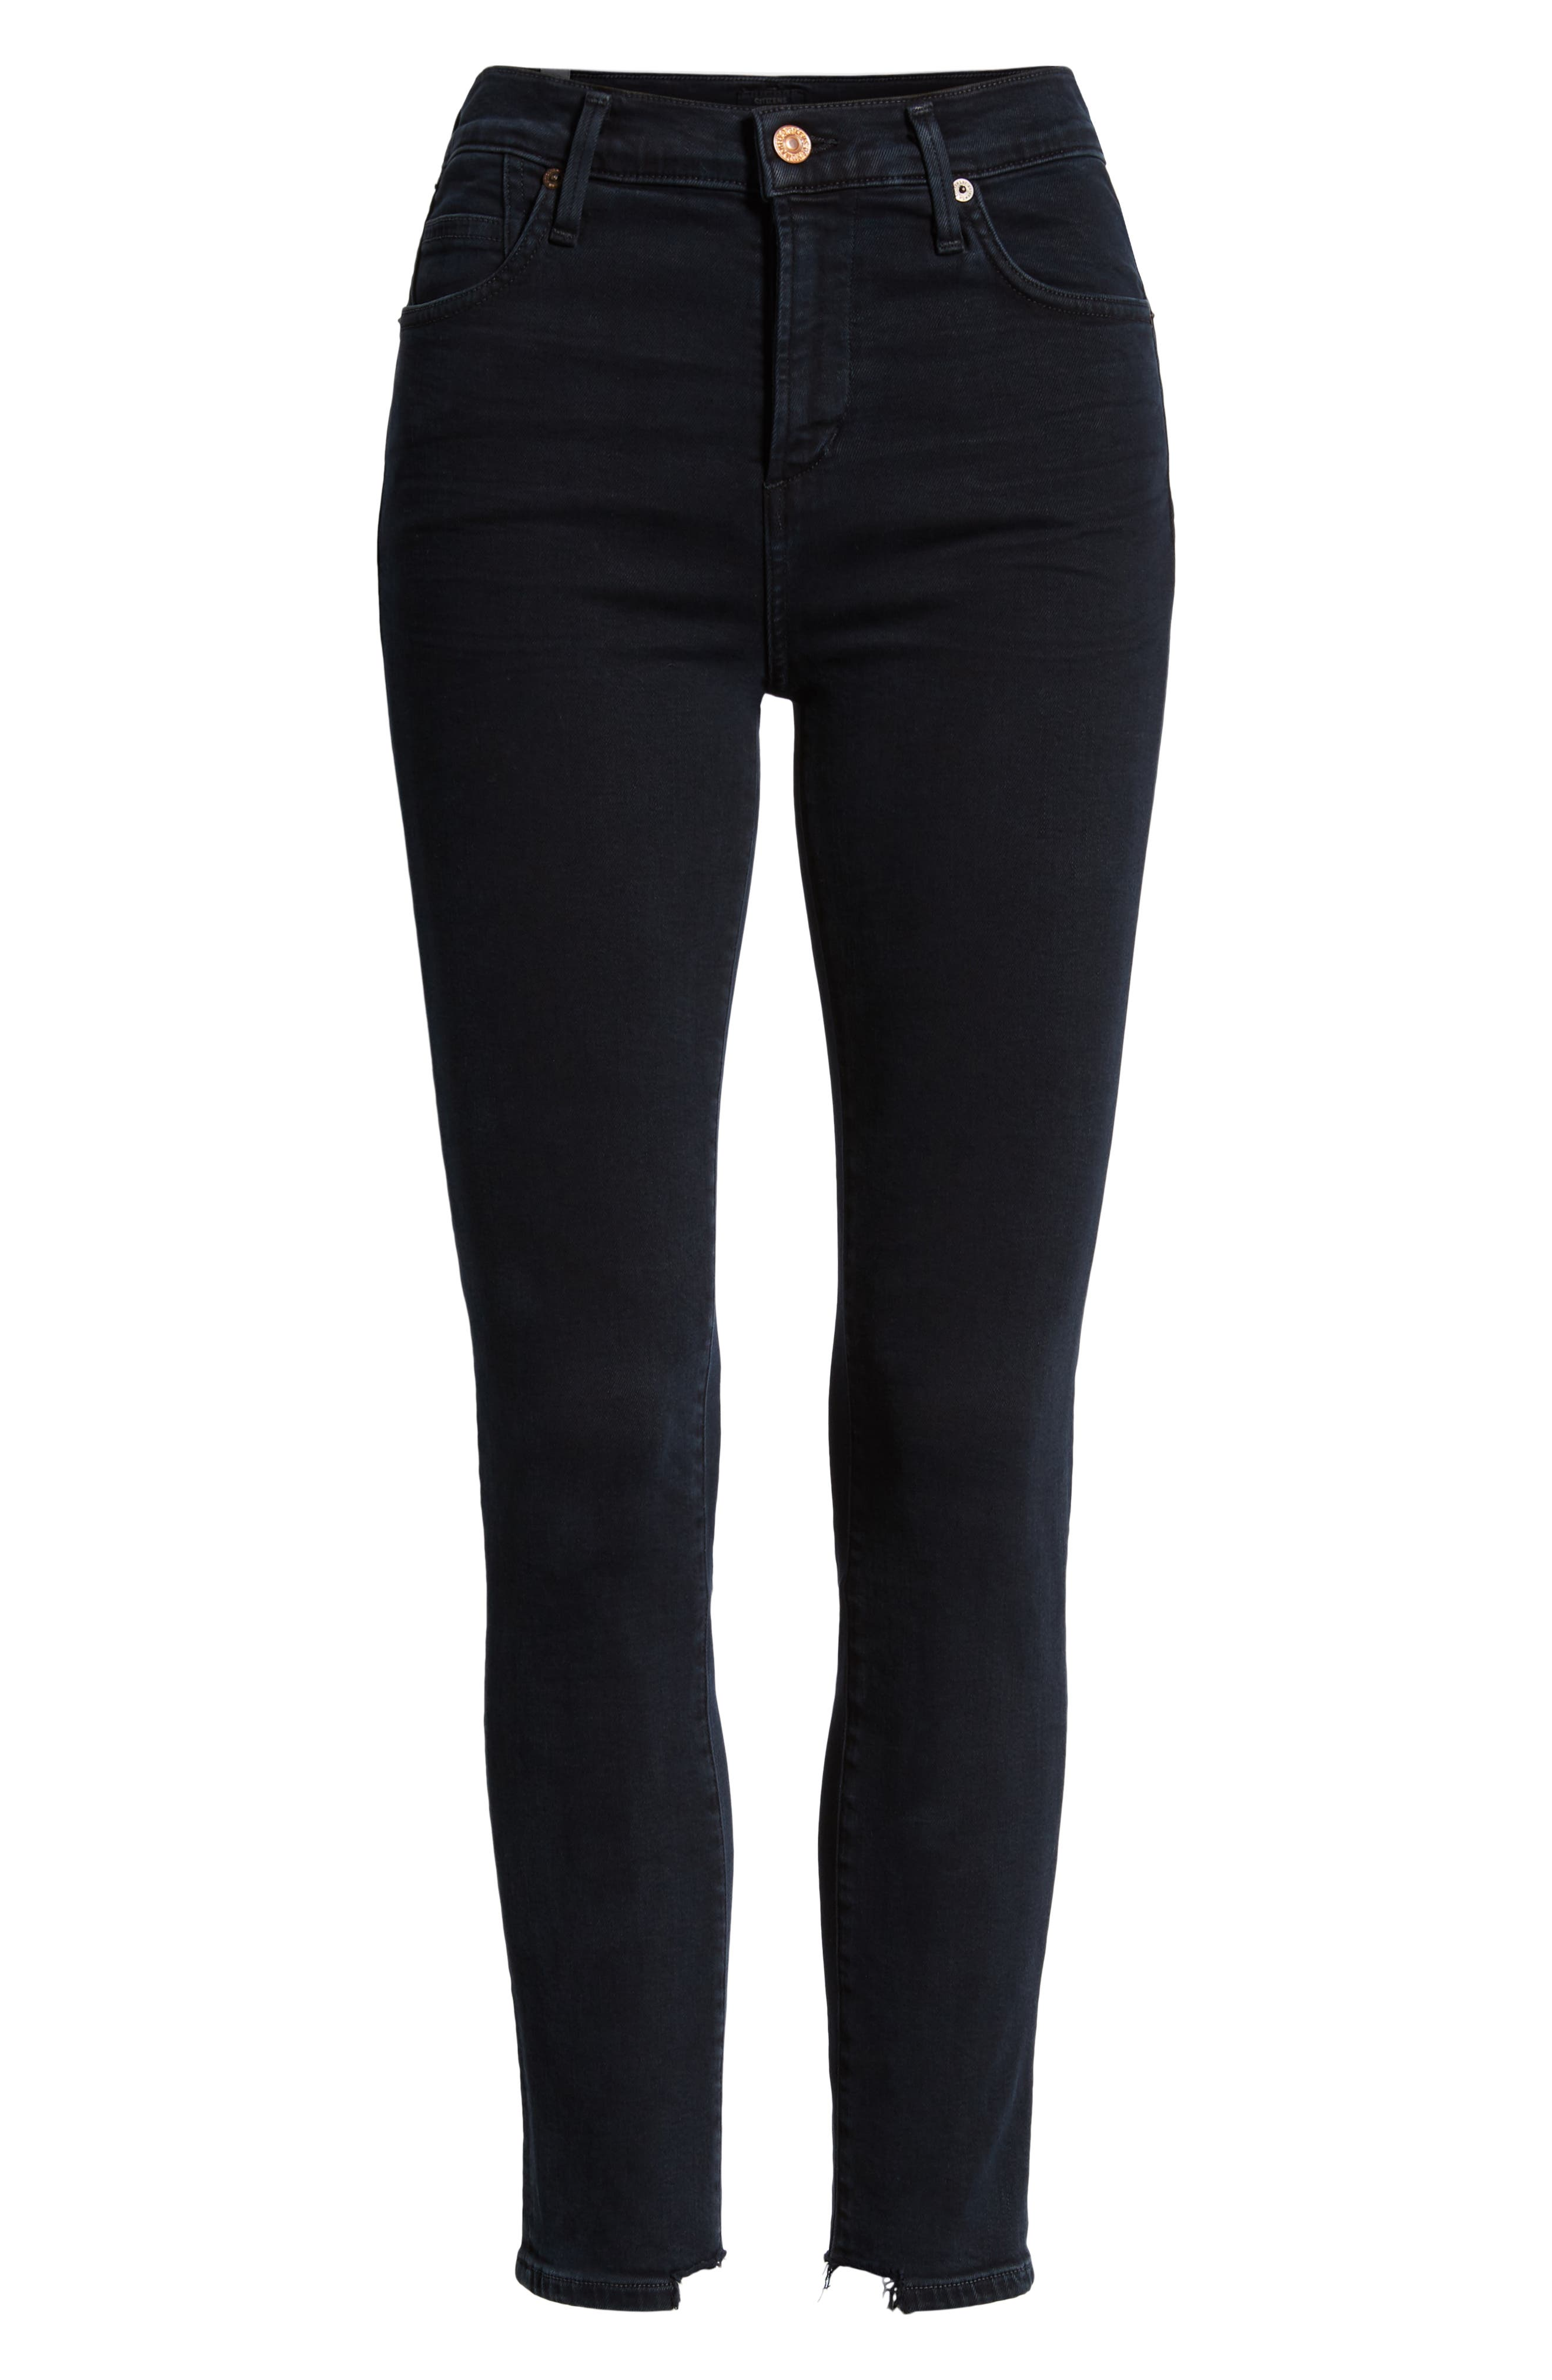 CITIZENS OF HUMANITY,                             Rocket High Waist Crop Skinny Jeans,                             Alternate thumbnail 7, color,                             BLUE PRINT